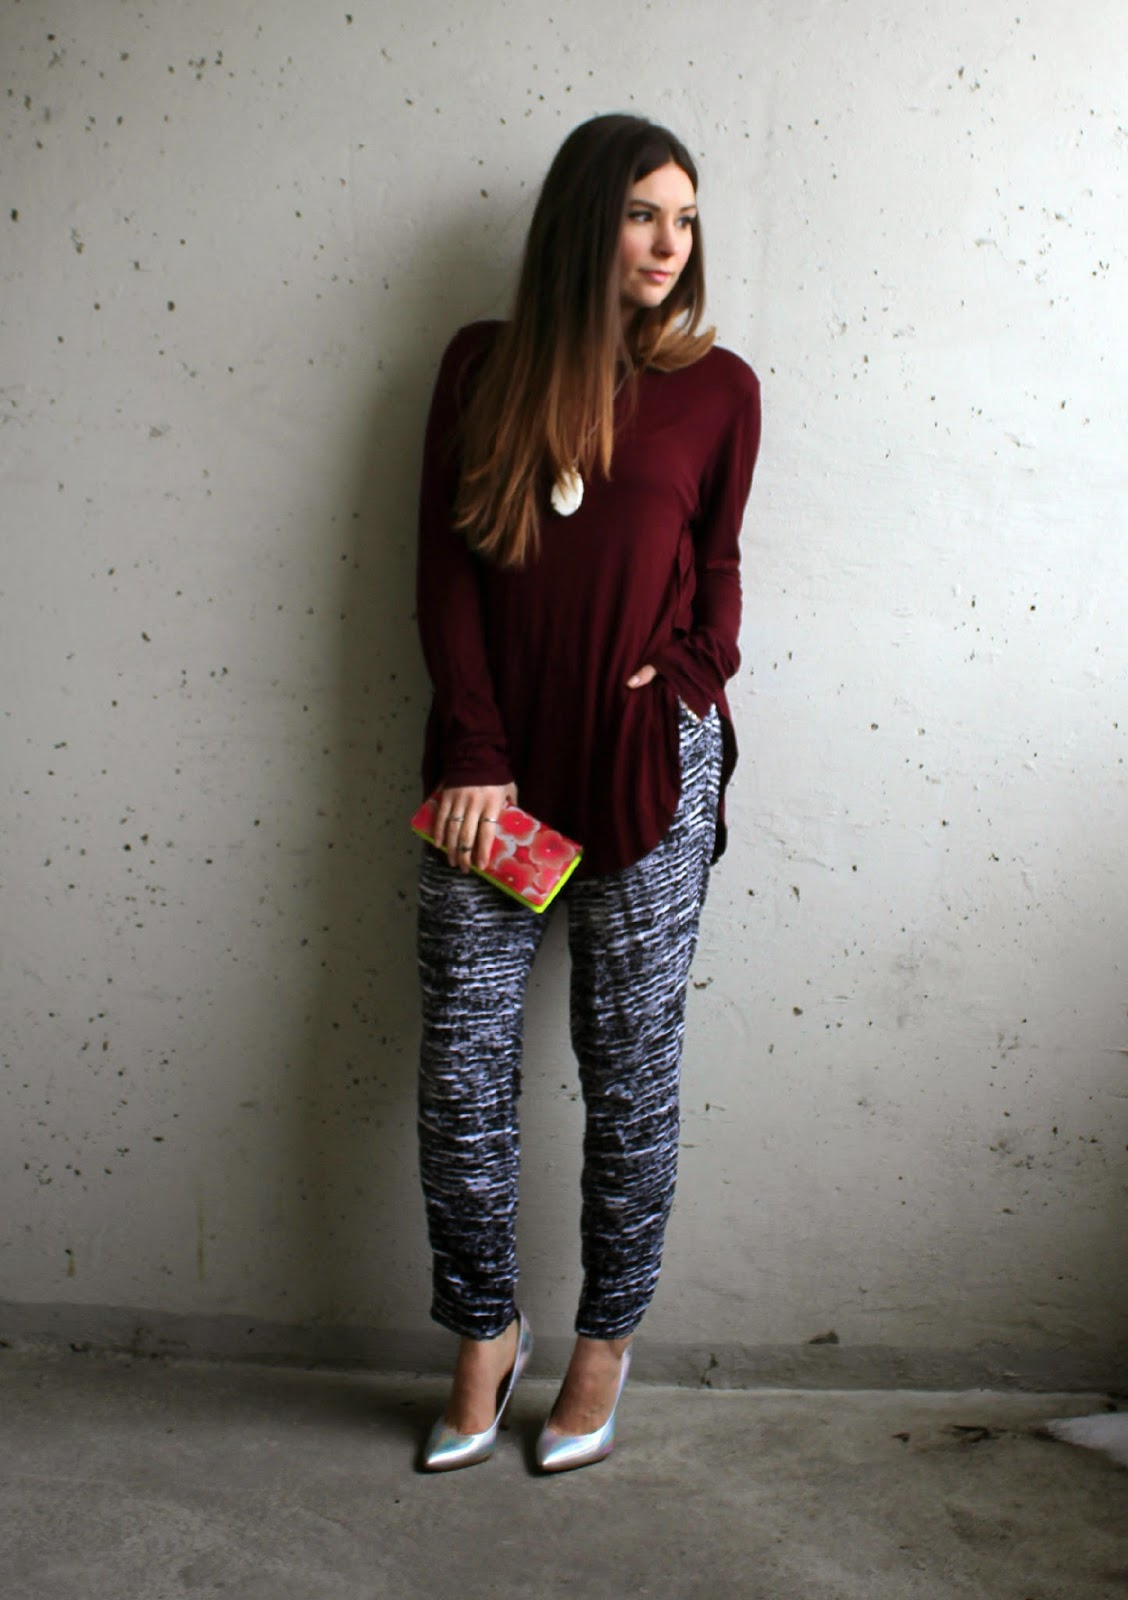 Burgundy cotton long sleeve, black and white cotton pants, silver pumps. Marc Jacobs wallet